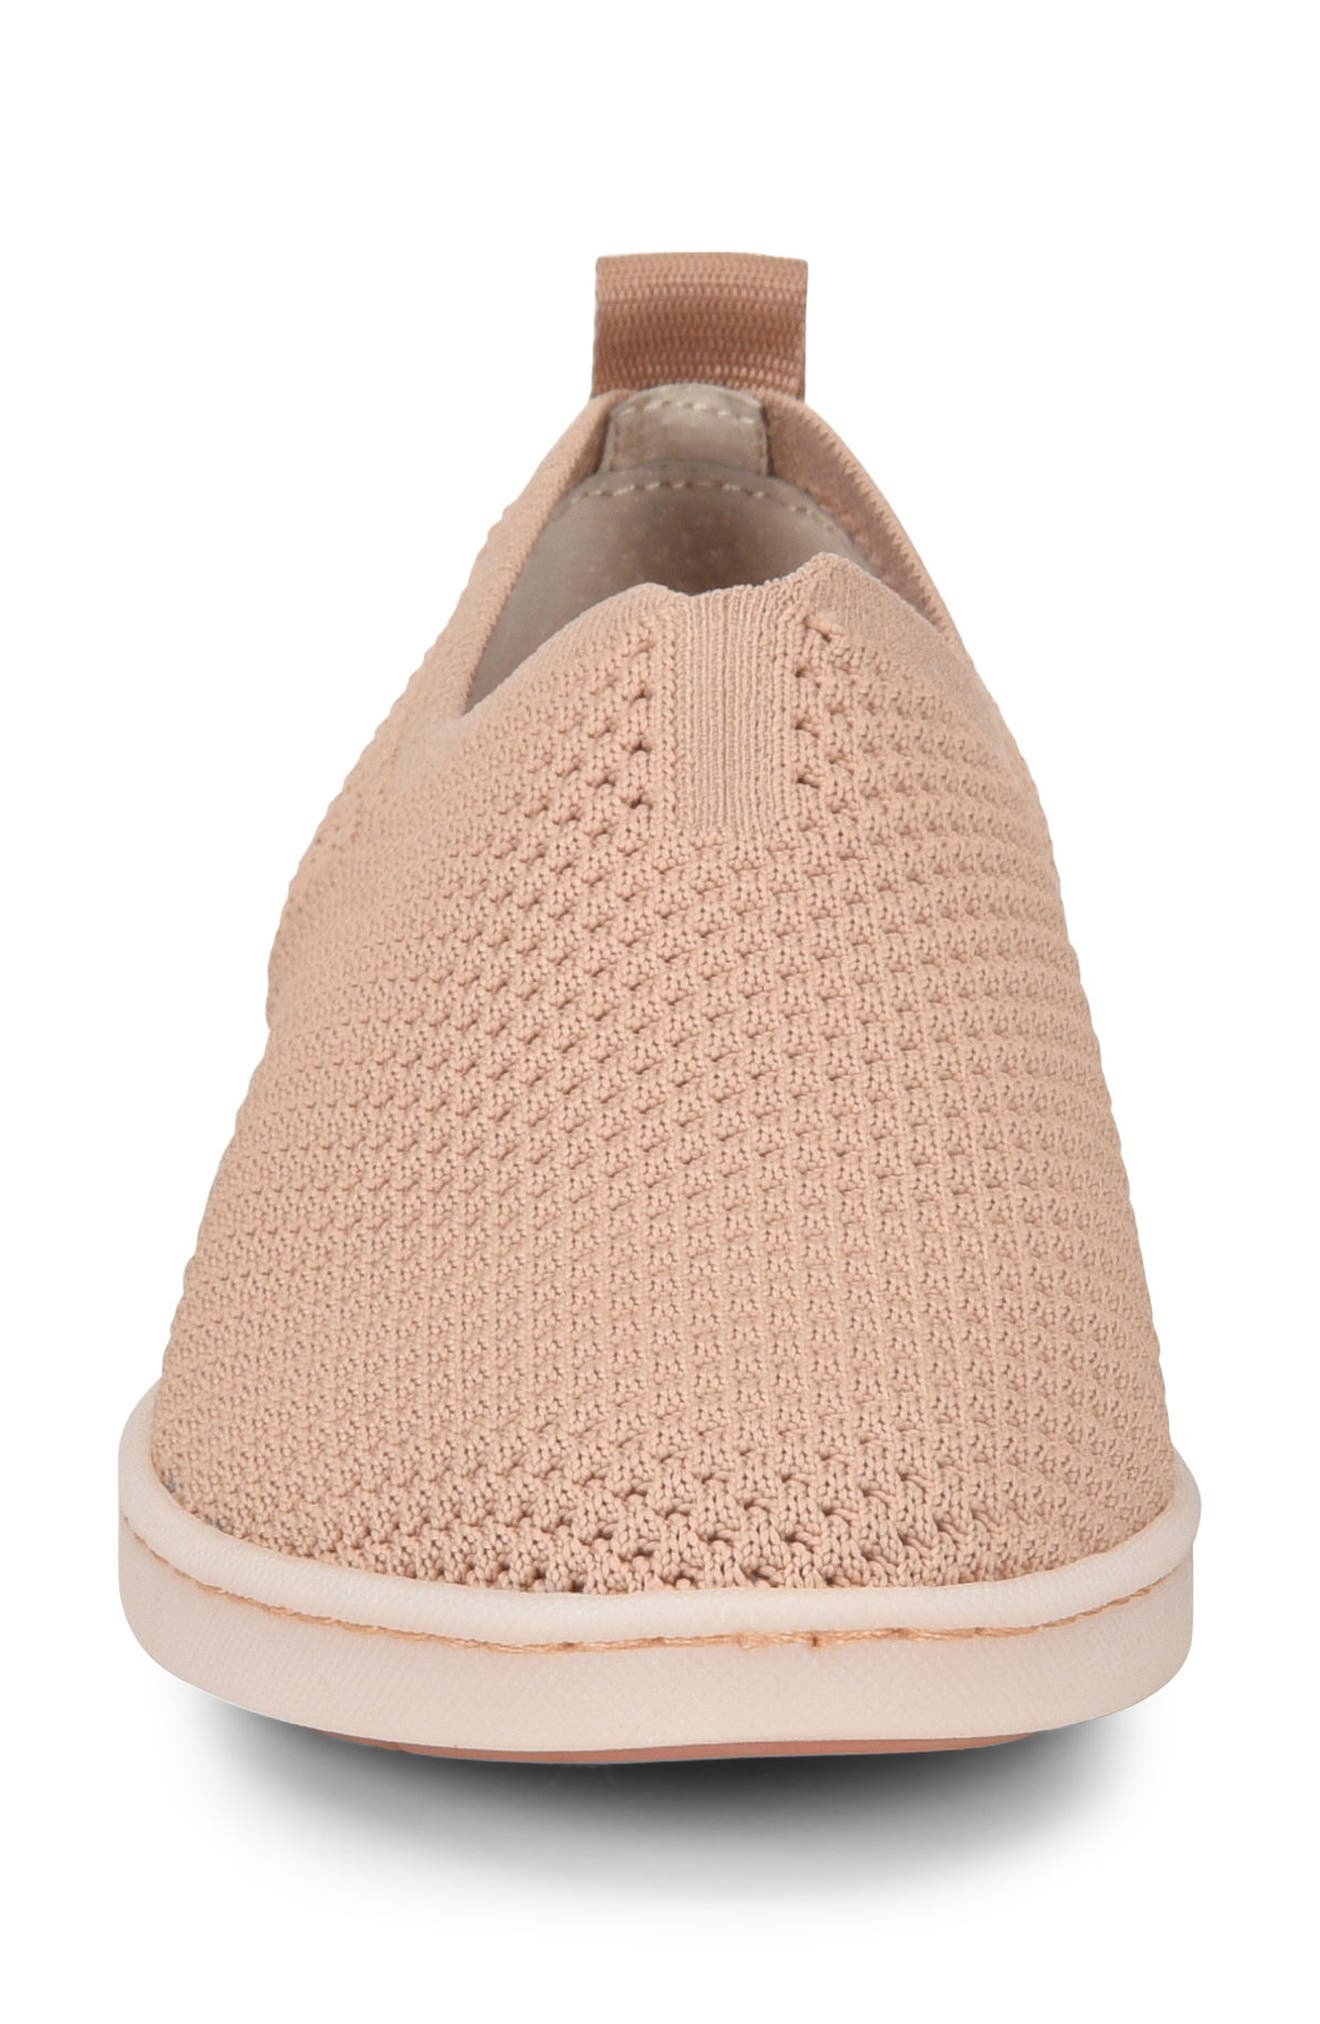 Hazy Slip-On Sneaker,                             Alternate thumbnail 4, color,                             Blush Fabirc